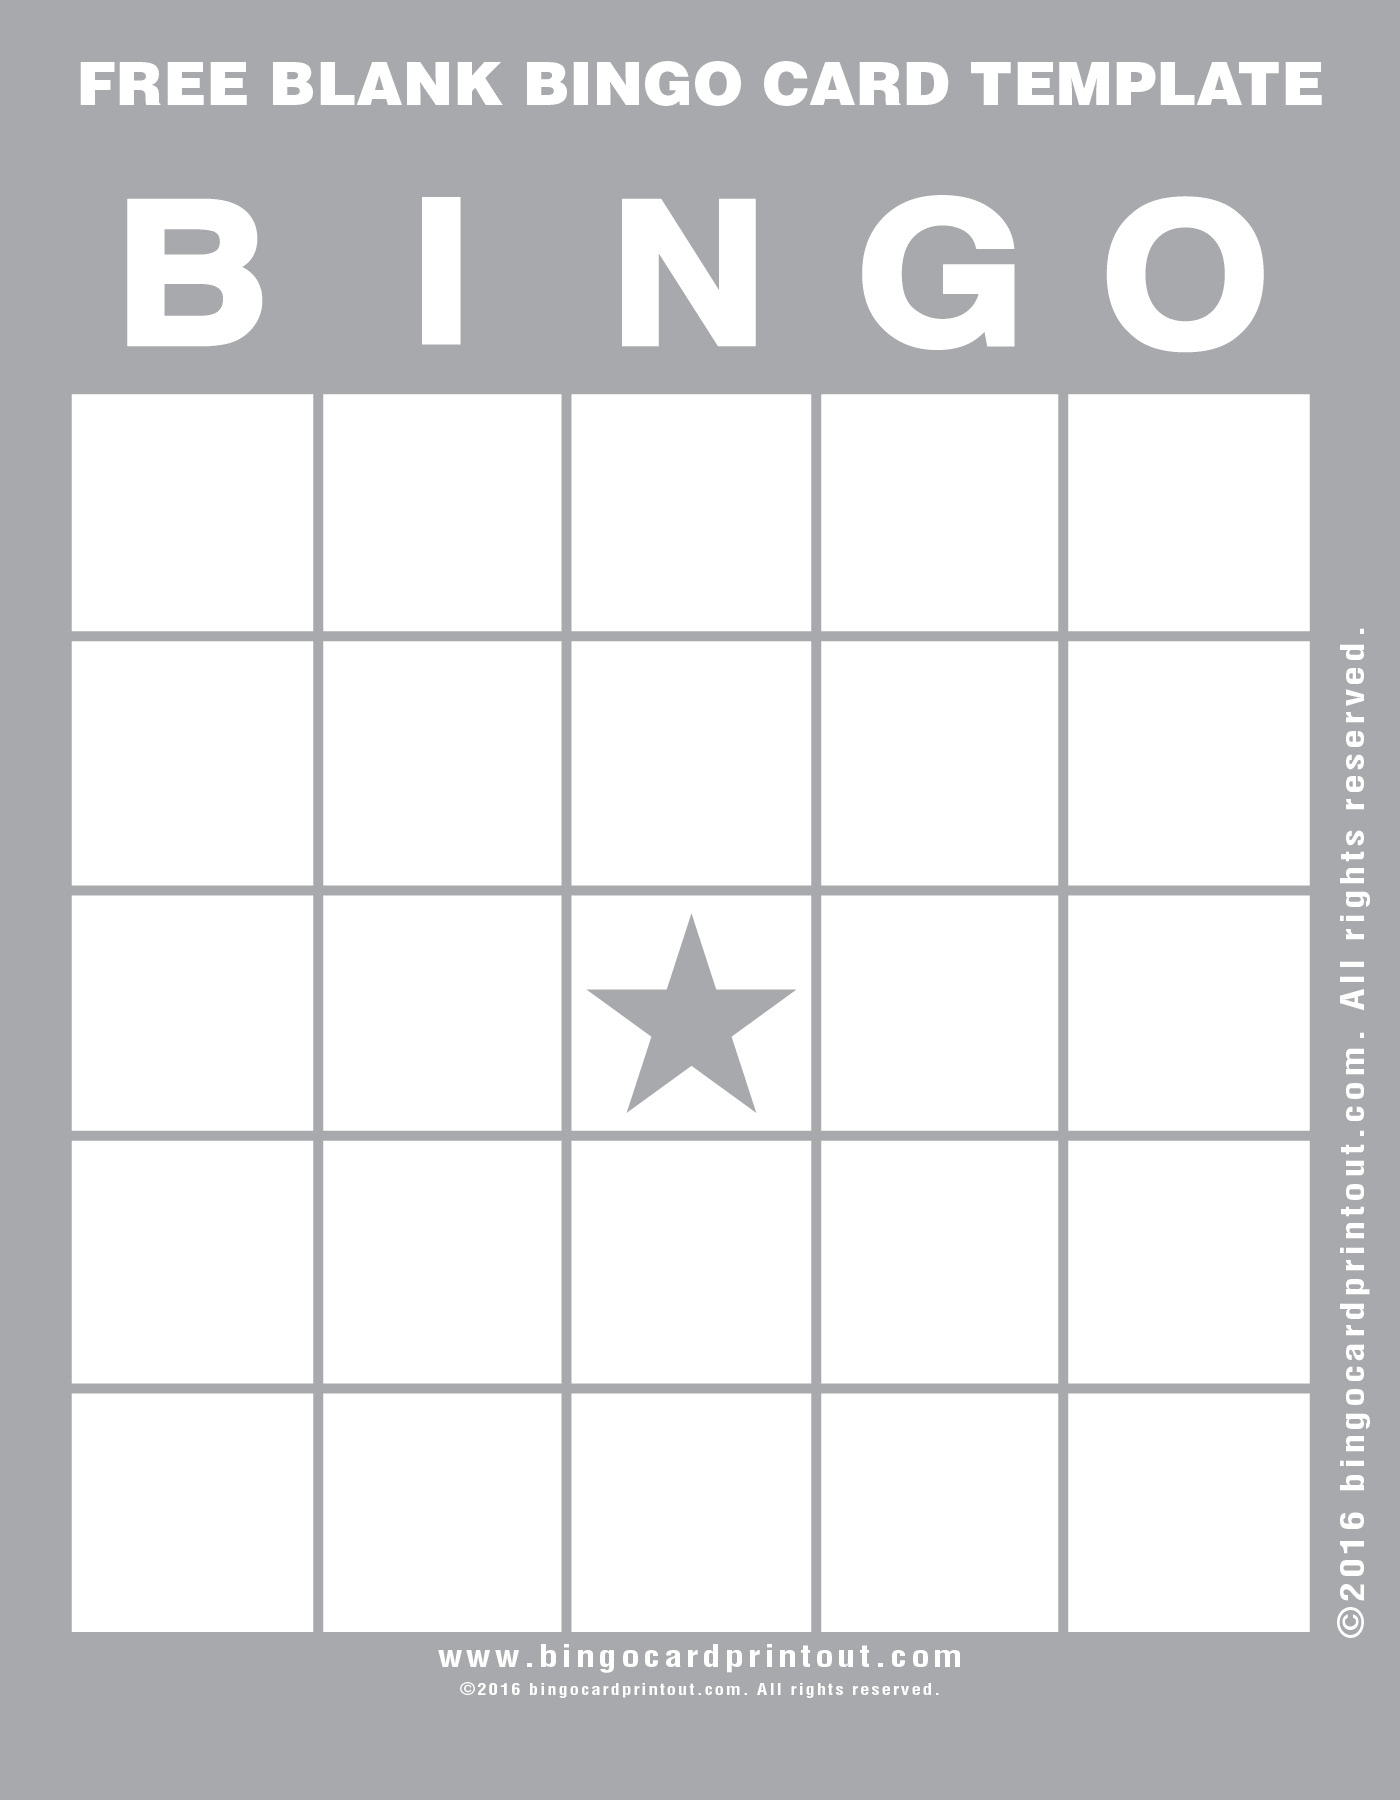 Make your next free blank bingo card template selection from one of ...